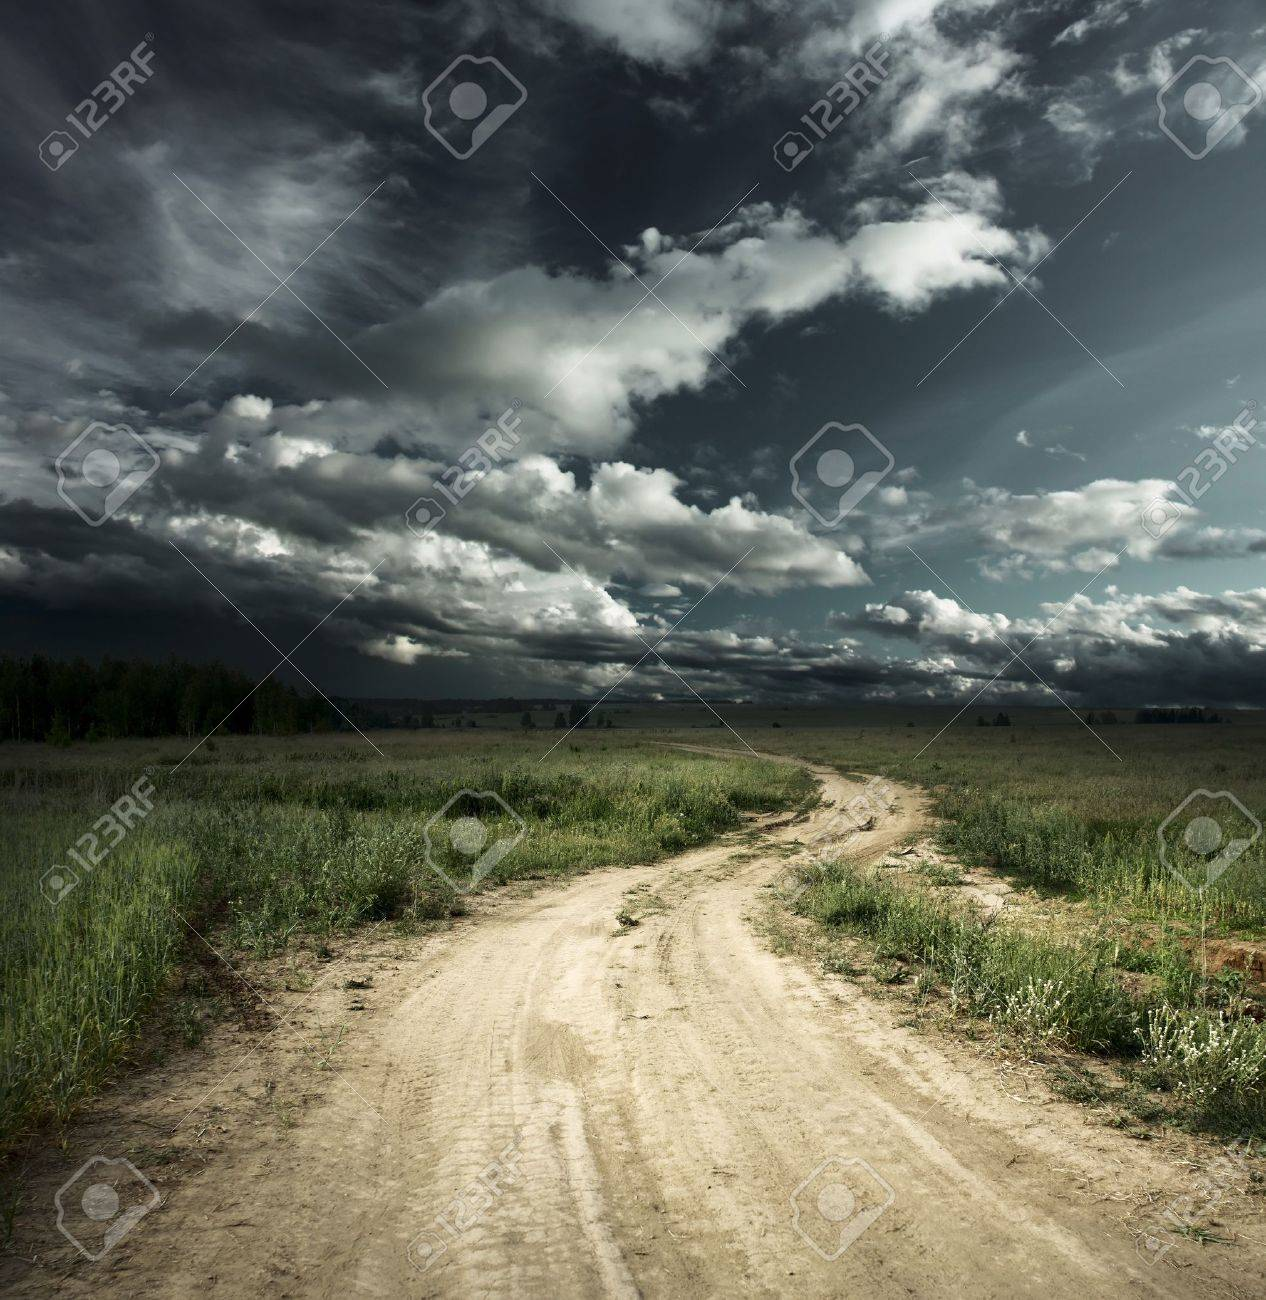 Road in field and stormy clouds Stock Photo - 7470124